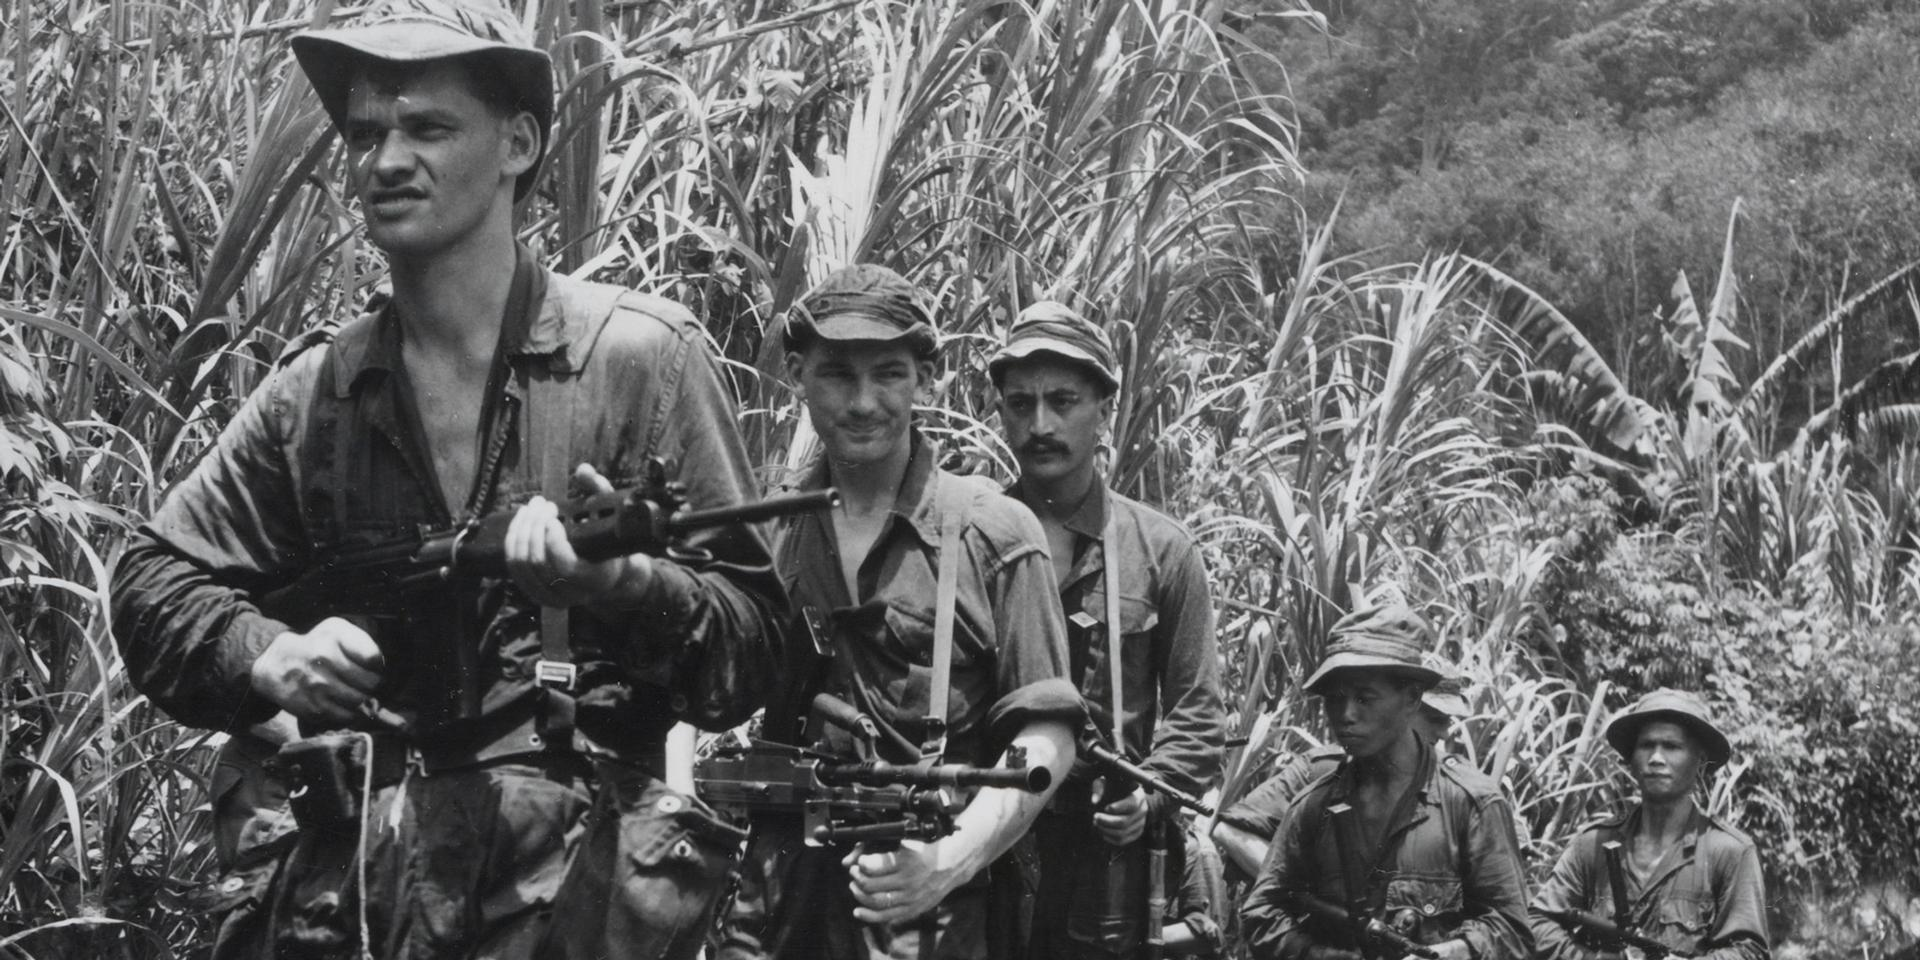 22 Squadron Special Air Service patrol the Malayan jungle, 1957